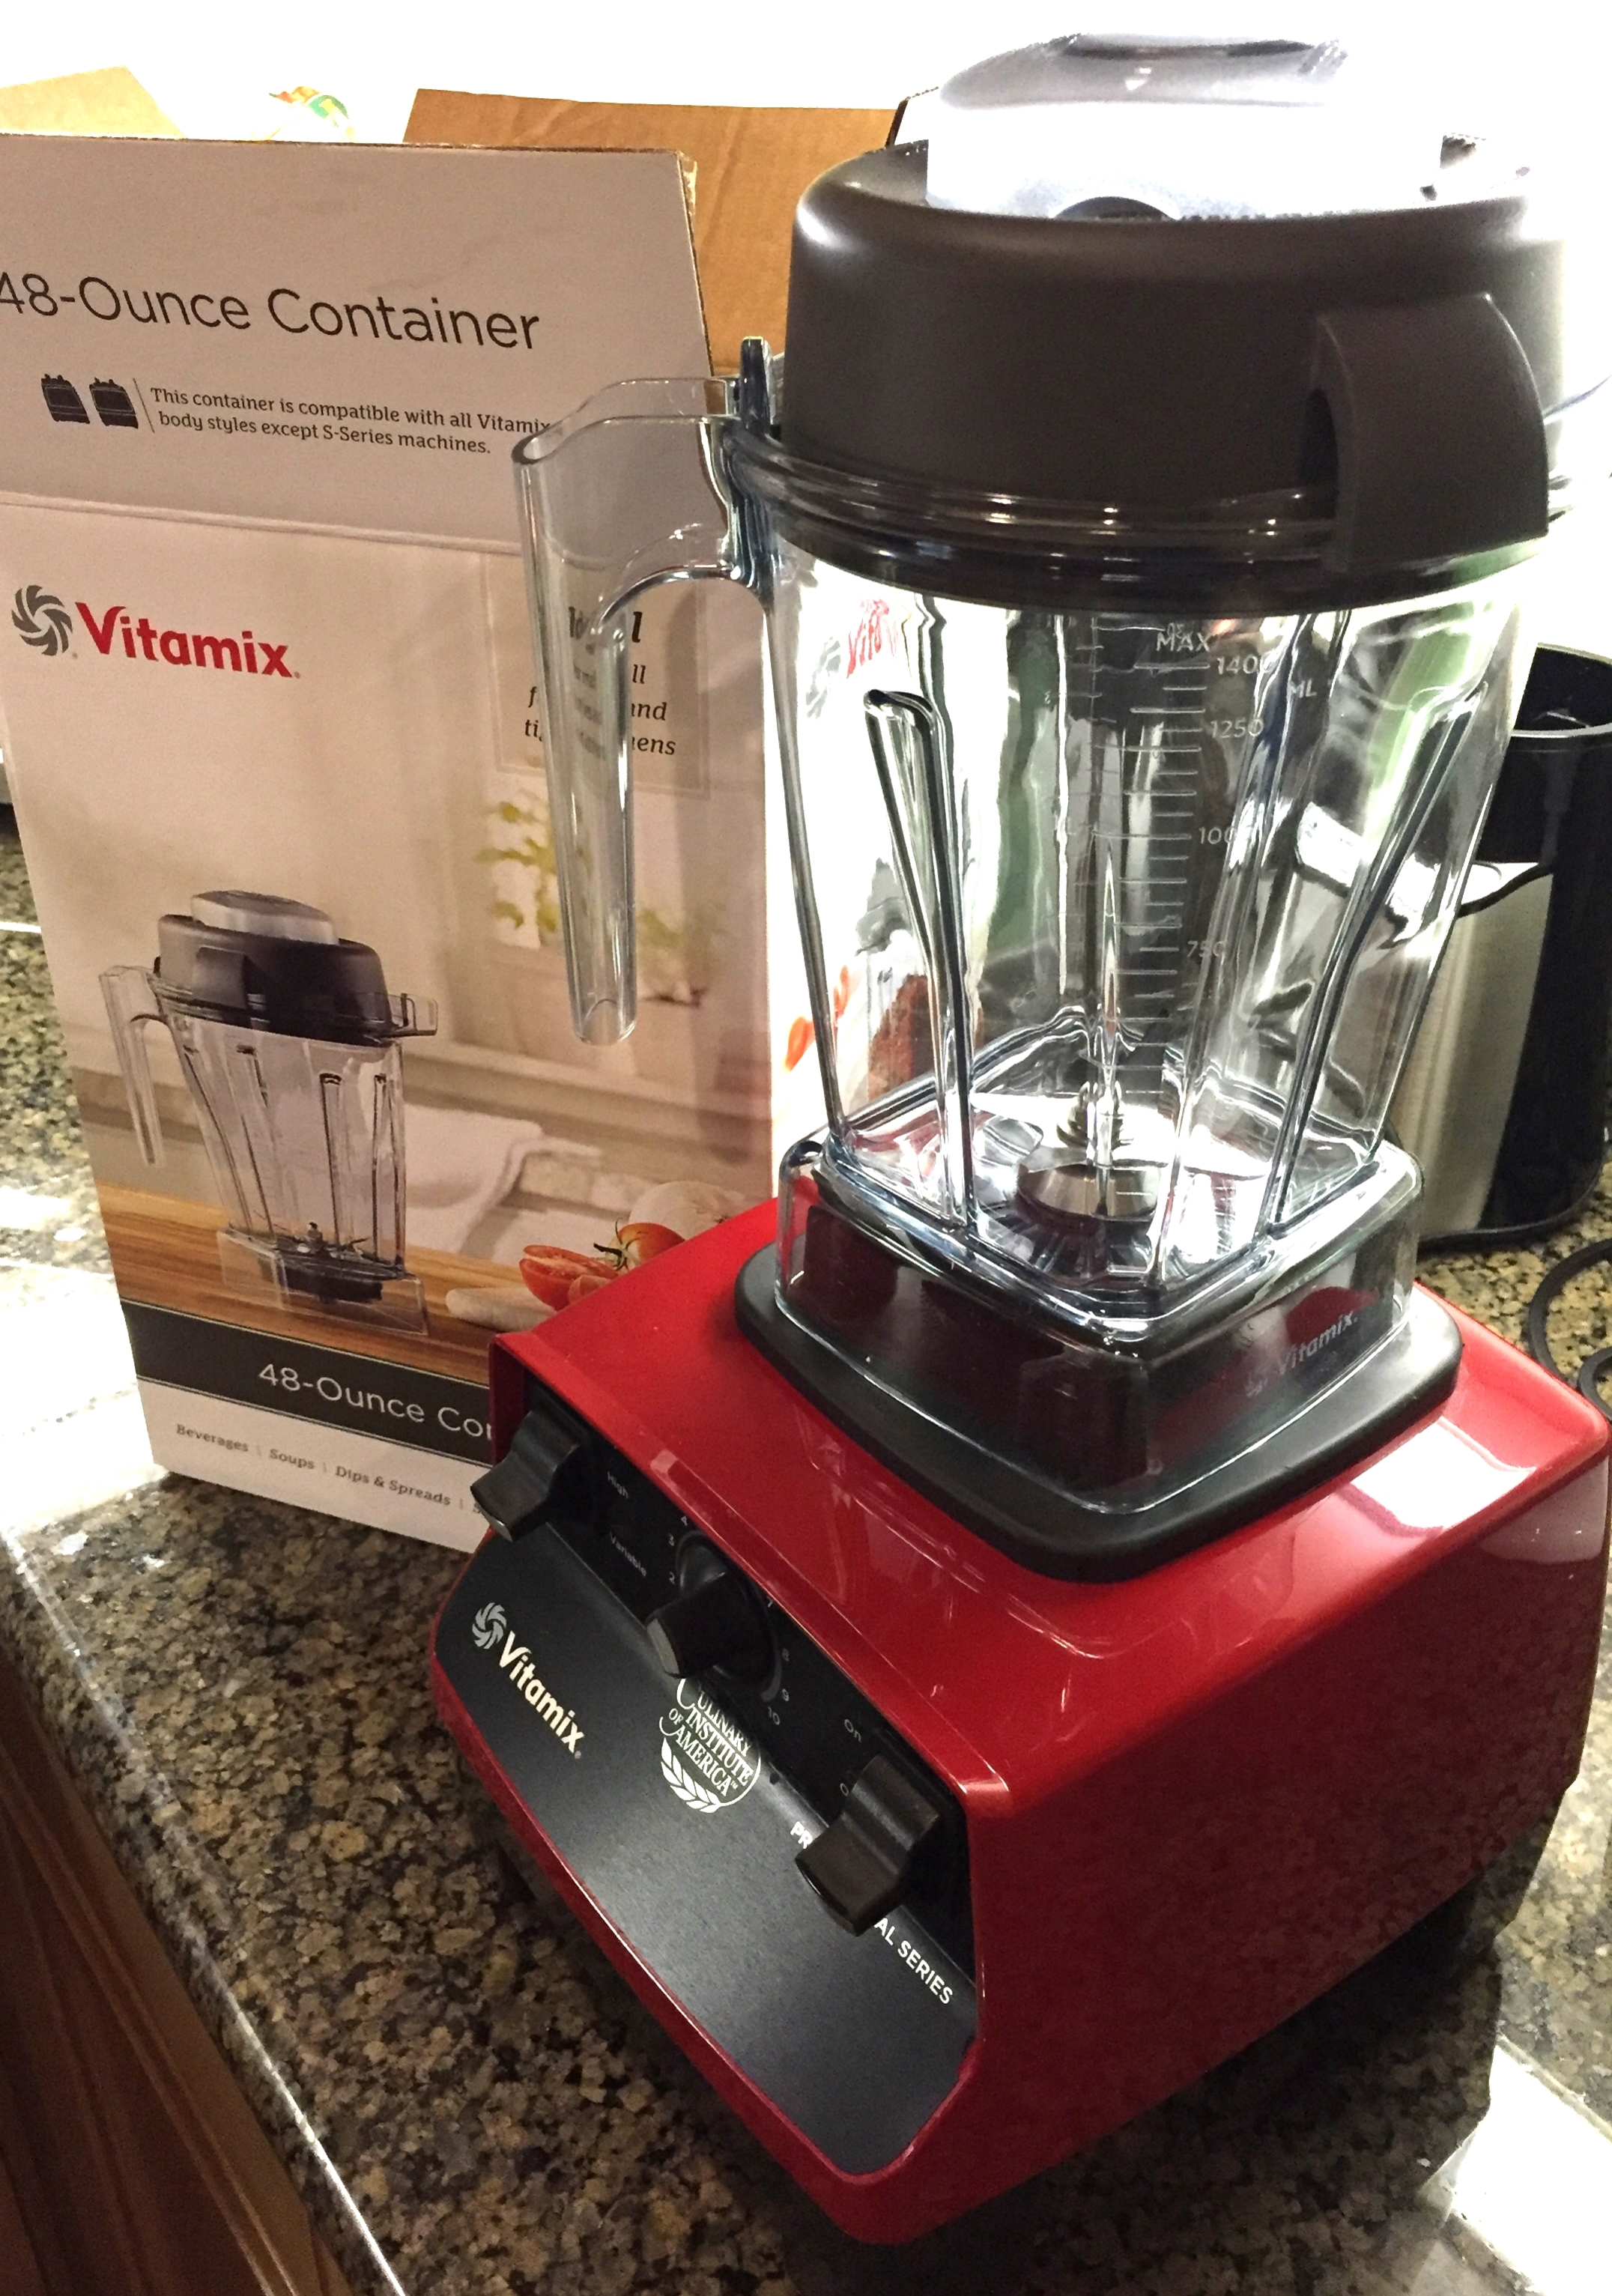 Vitamix 48 Once Container | Beauty and the Drink